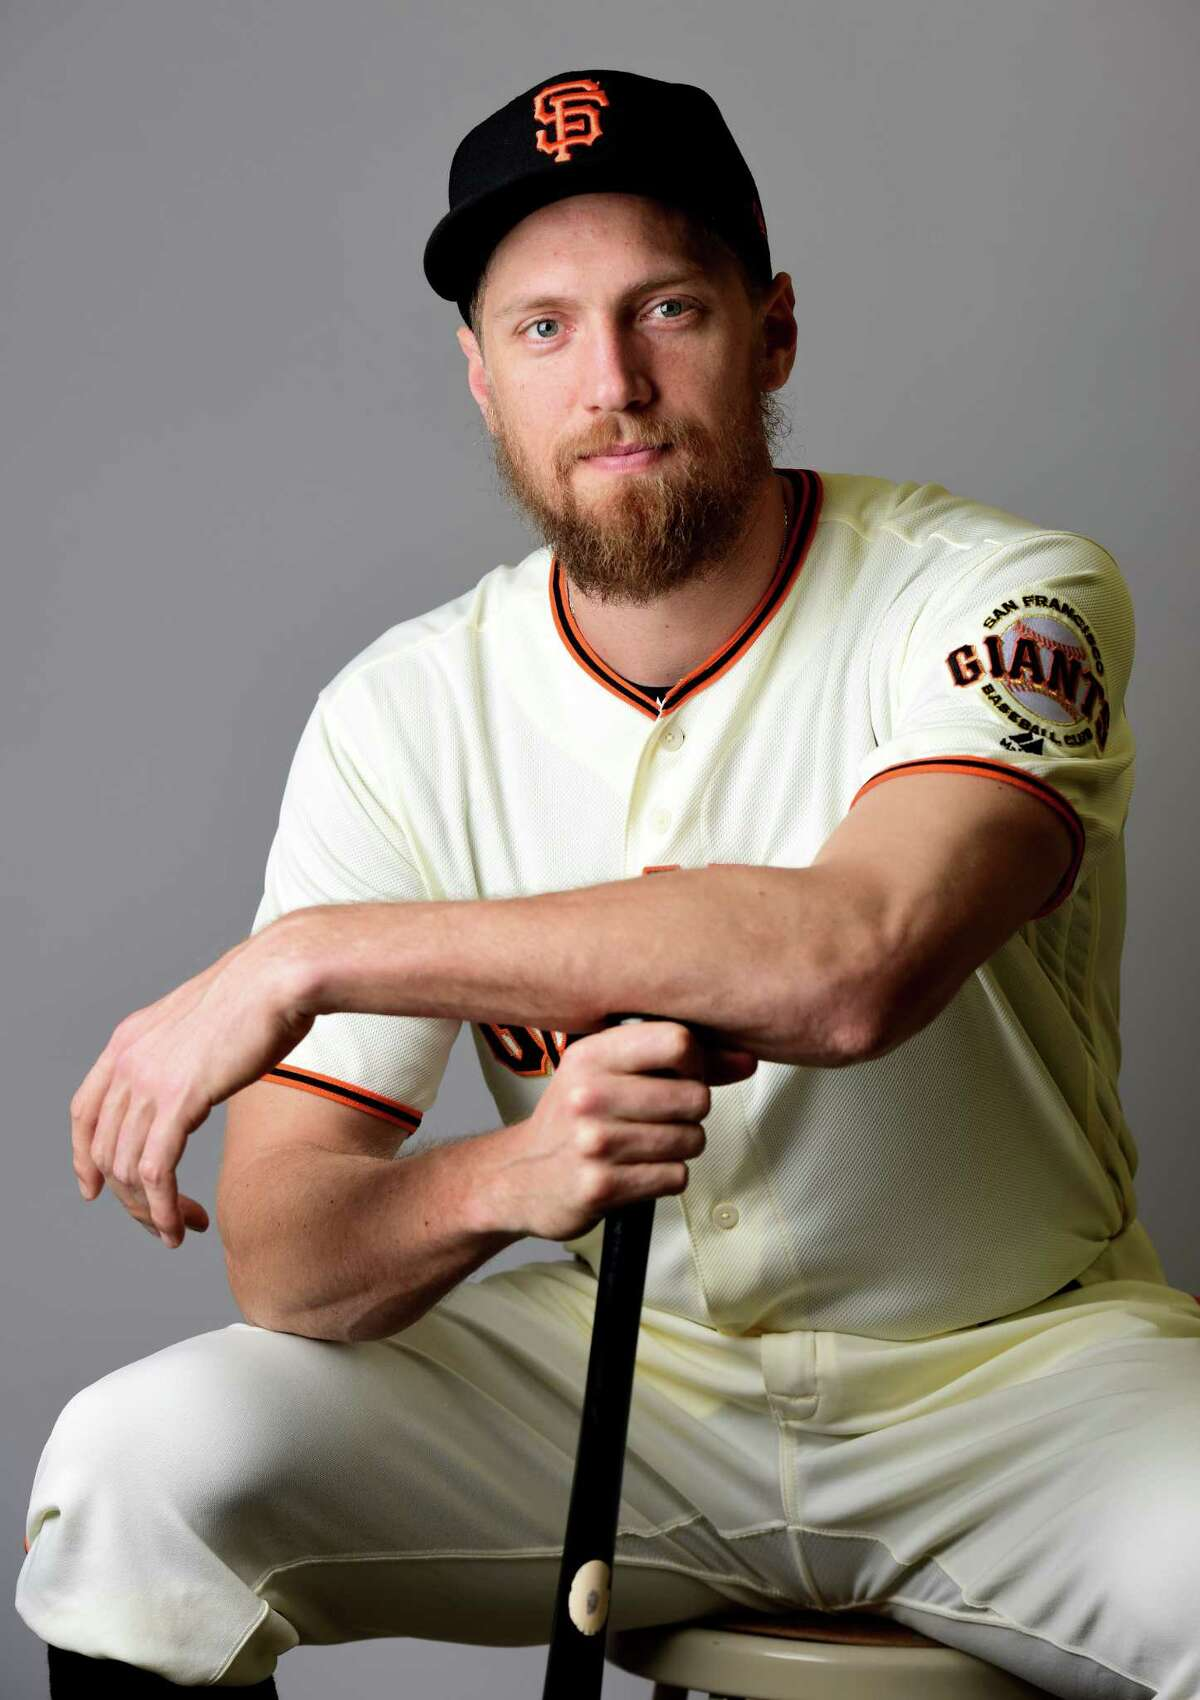 San Francisco Giants right fielder Hunter Pence is opening Coral Sword, a gamer-focused coffee shop in Houston.